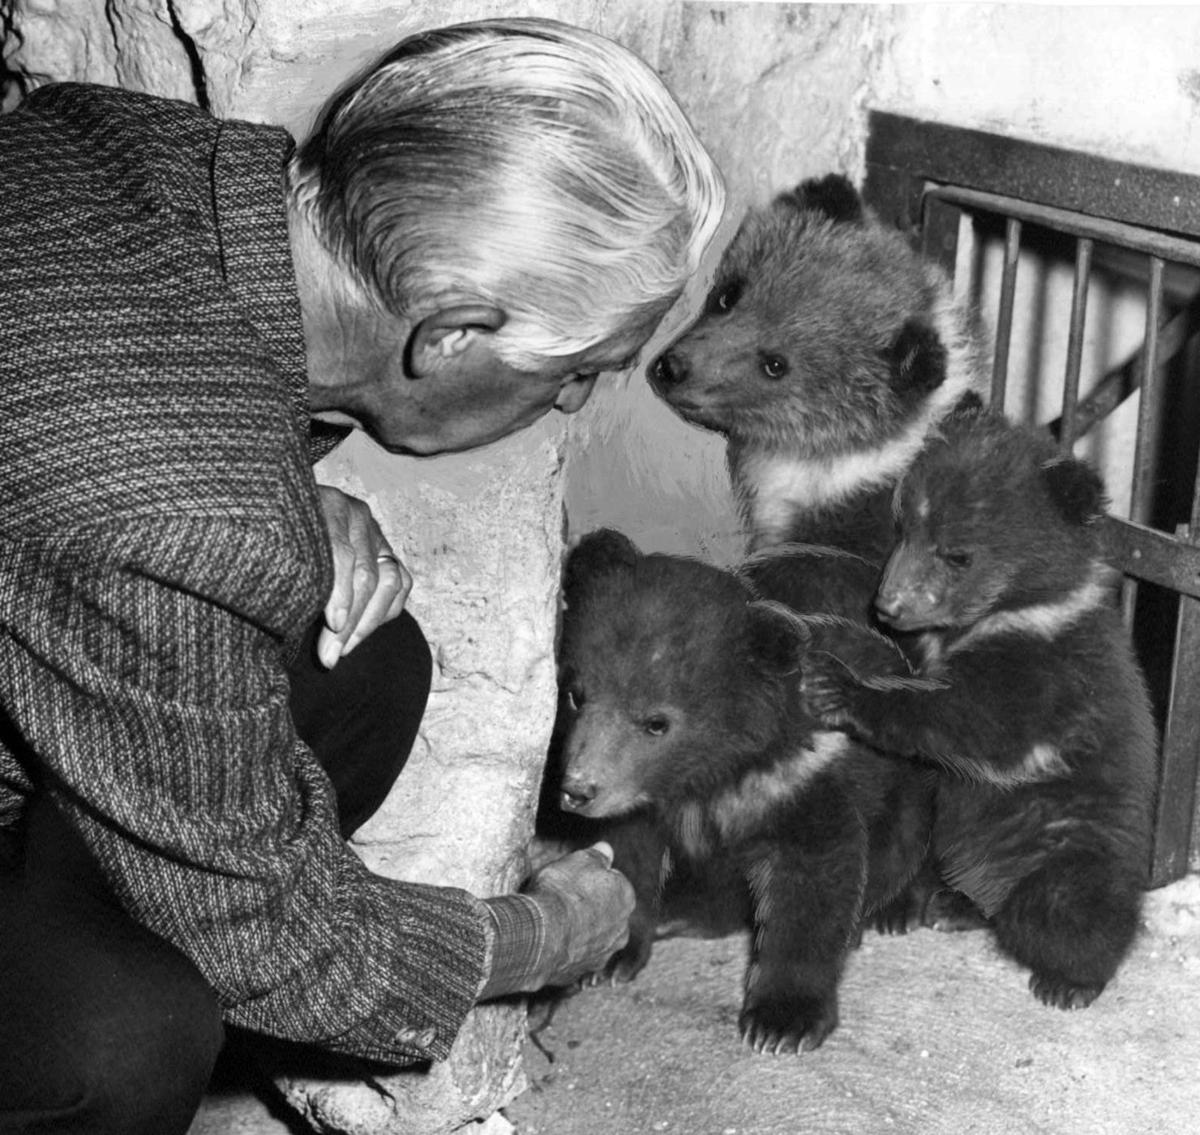 Bears at the St. Louis Zoo in 1965